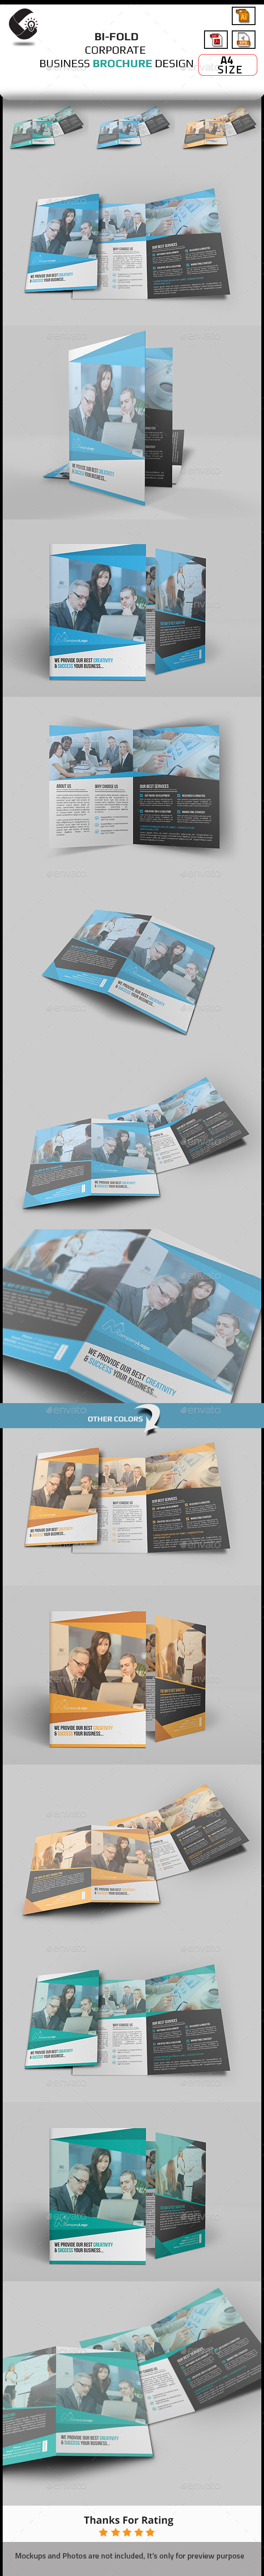 GraphicRiver Corporate Brochure Design 10955182